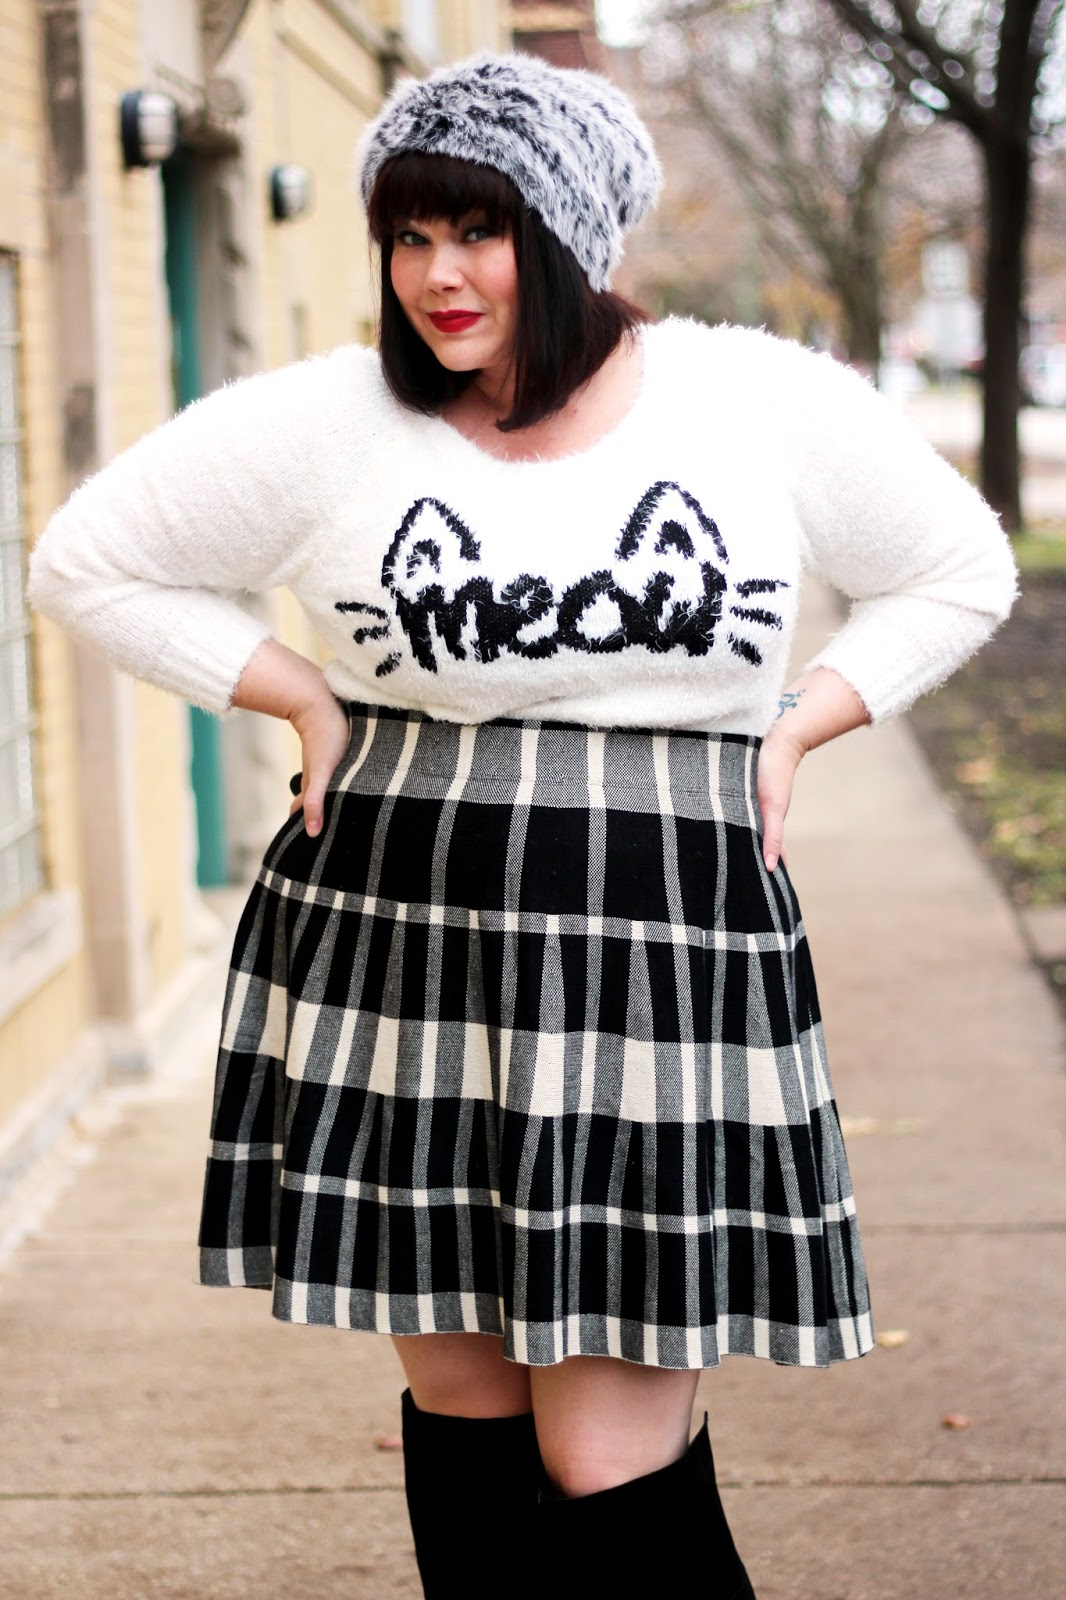 plus size cat sweater from torrid modeled by plus size blogger amber from style plus curves